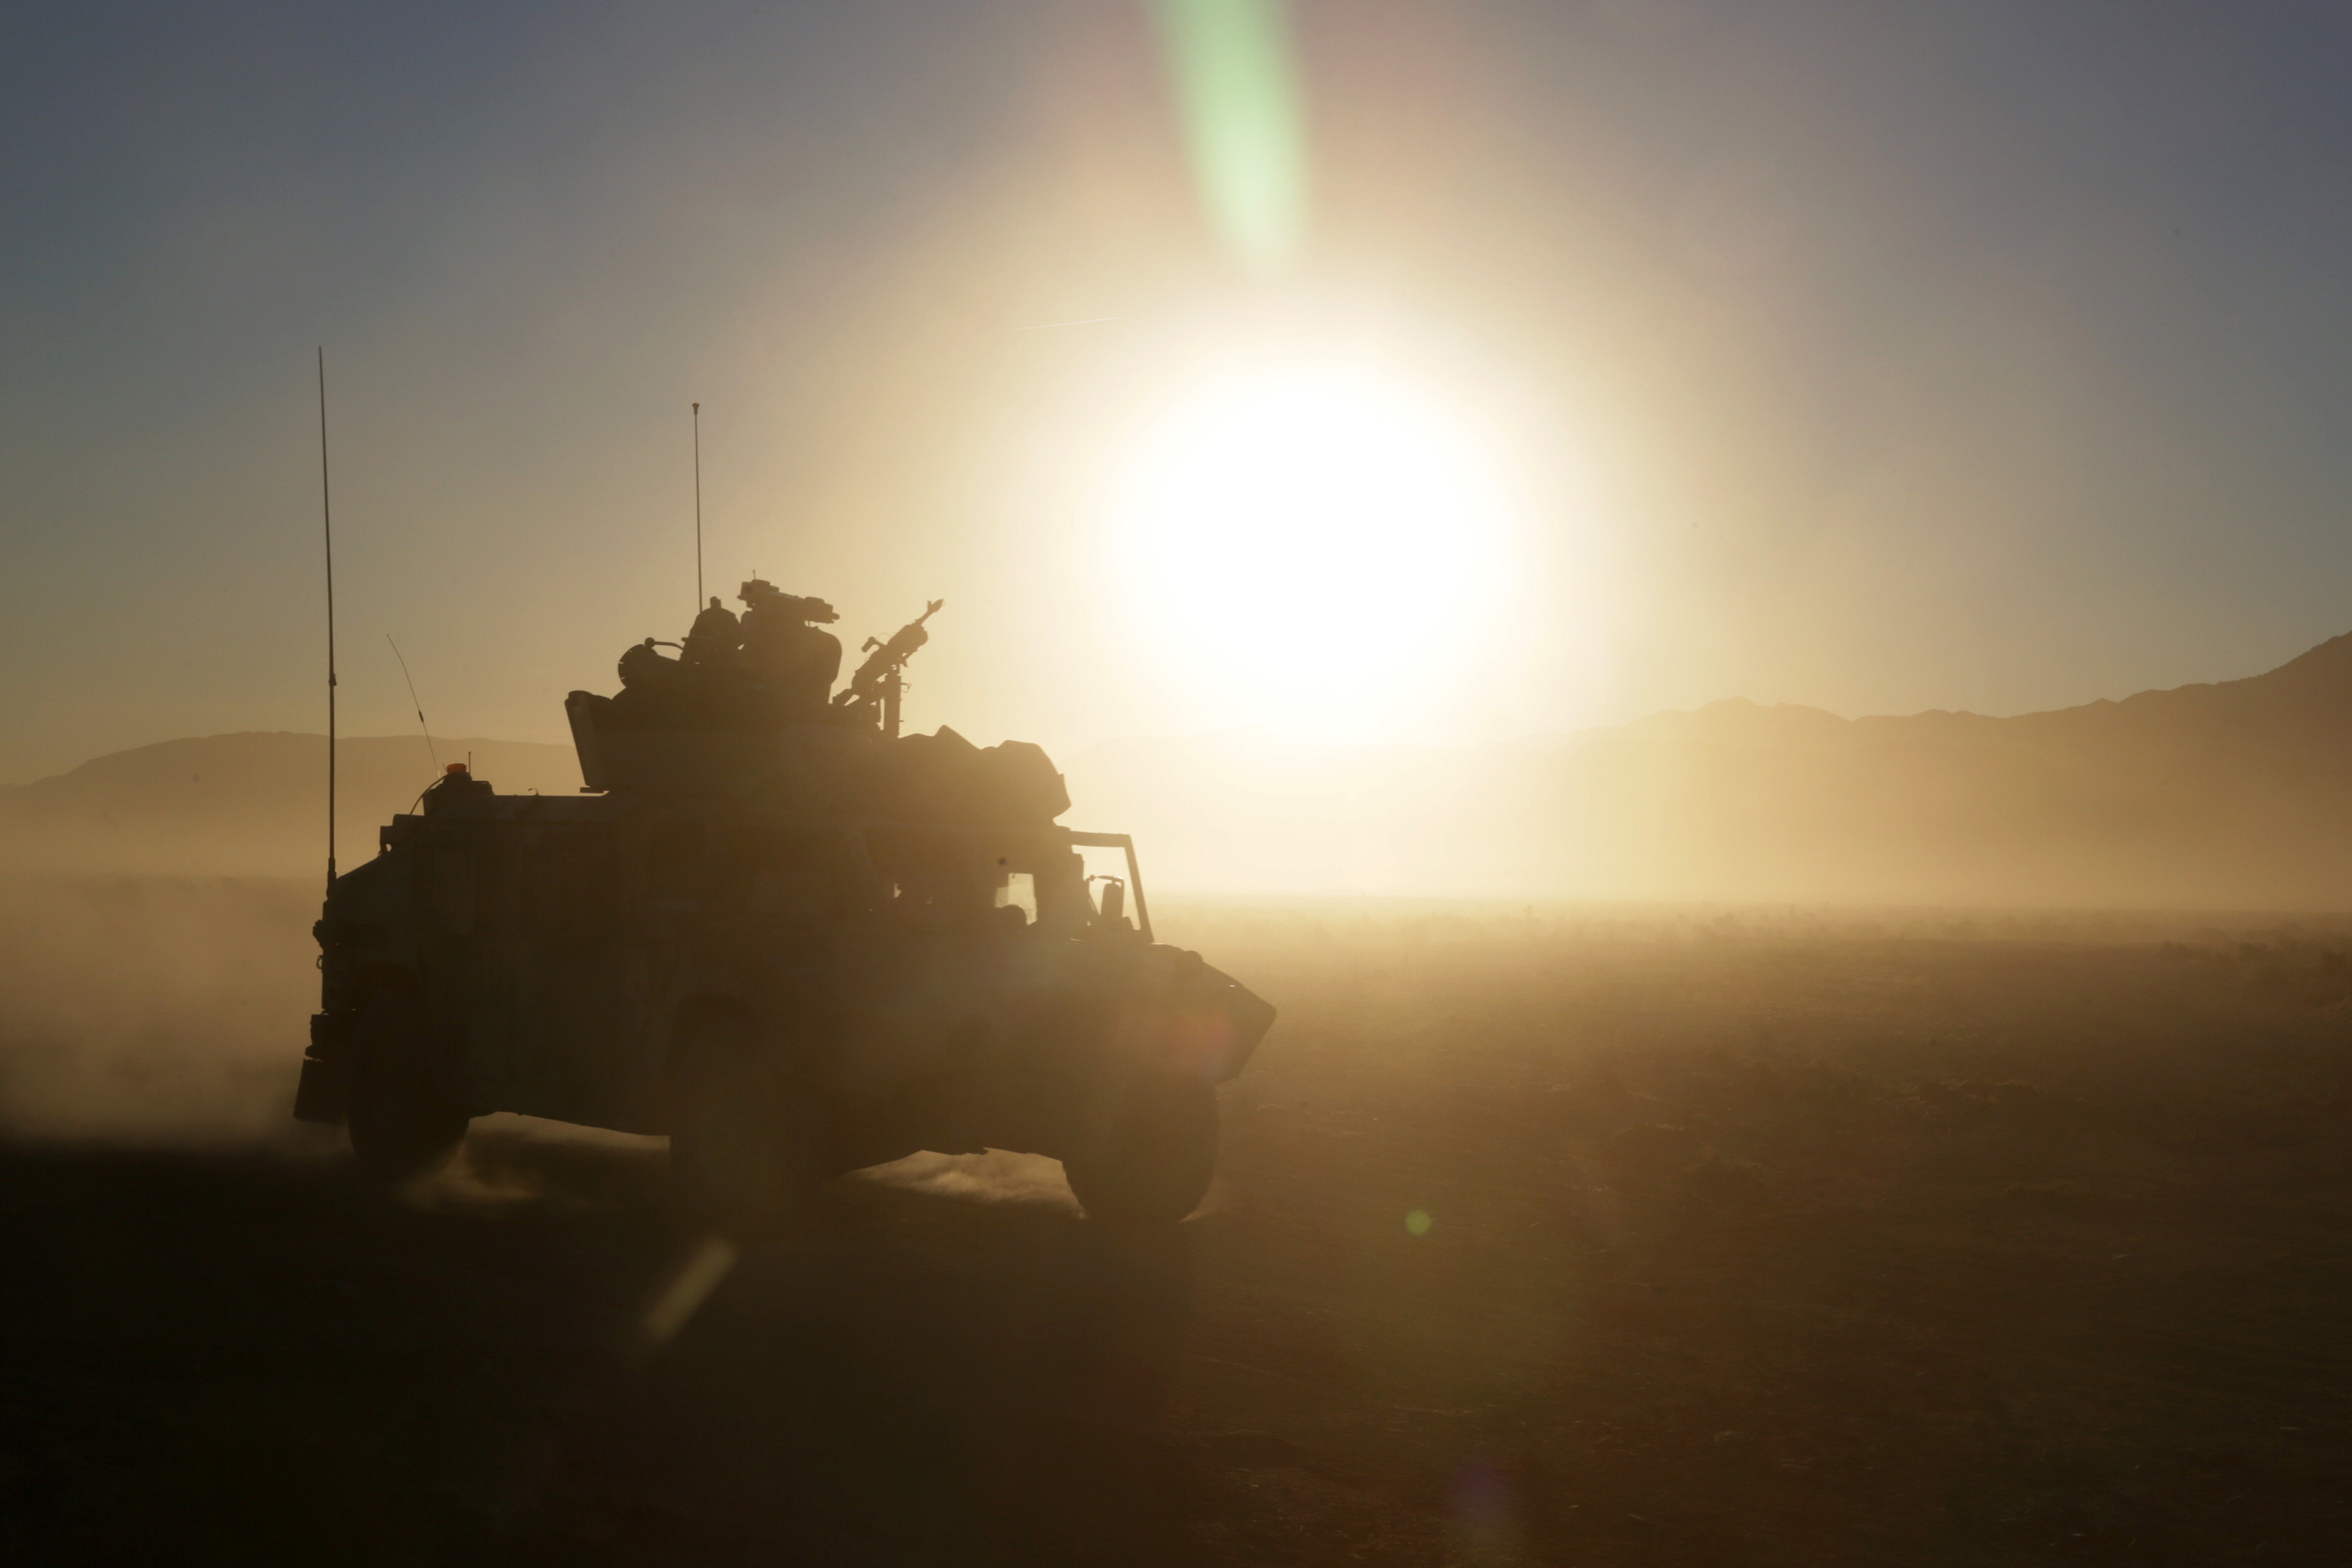 Soldiers assigned to 1st Squadron, 11th Armored Cavalry Regiment, assault an objective during Decisive Action Rotation 18-02 at the National Training Center in Fort Irwin, Calif. (Spc. Daniel Parrott/Army)